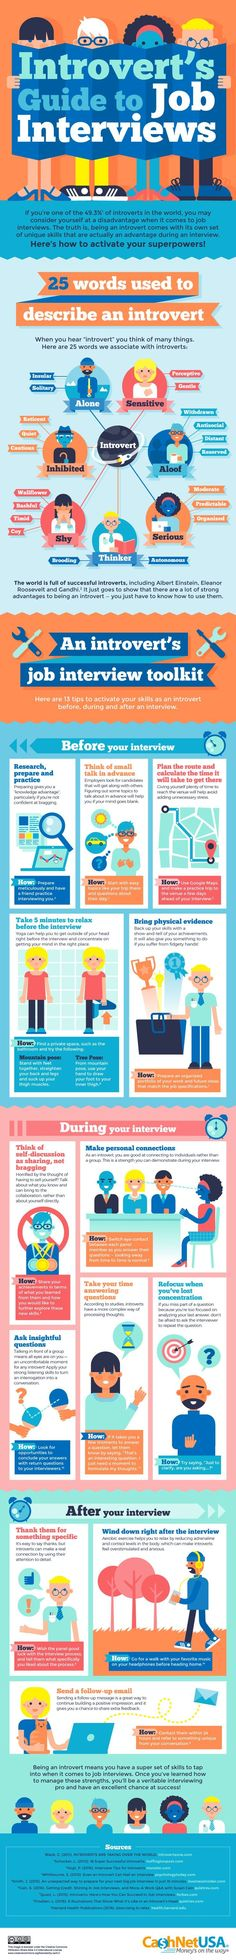 An Introvert's Guide to Job Interviews: Infographic